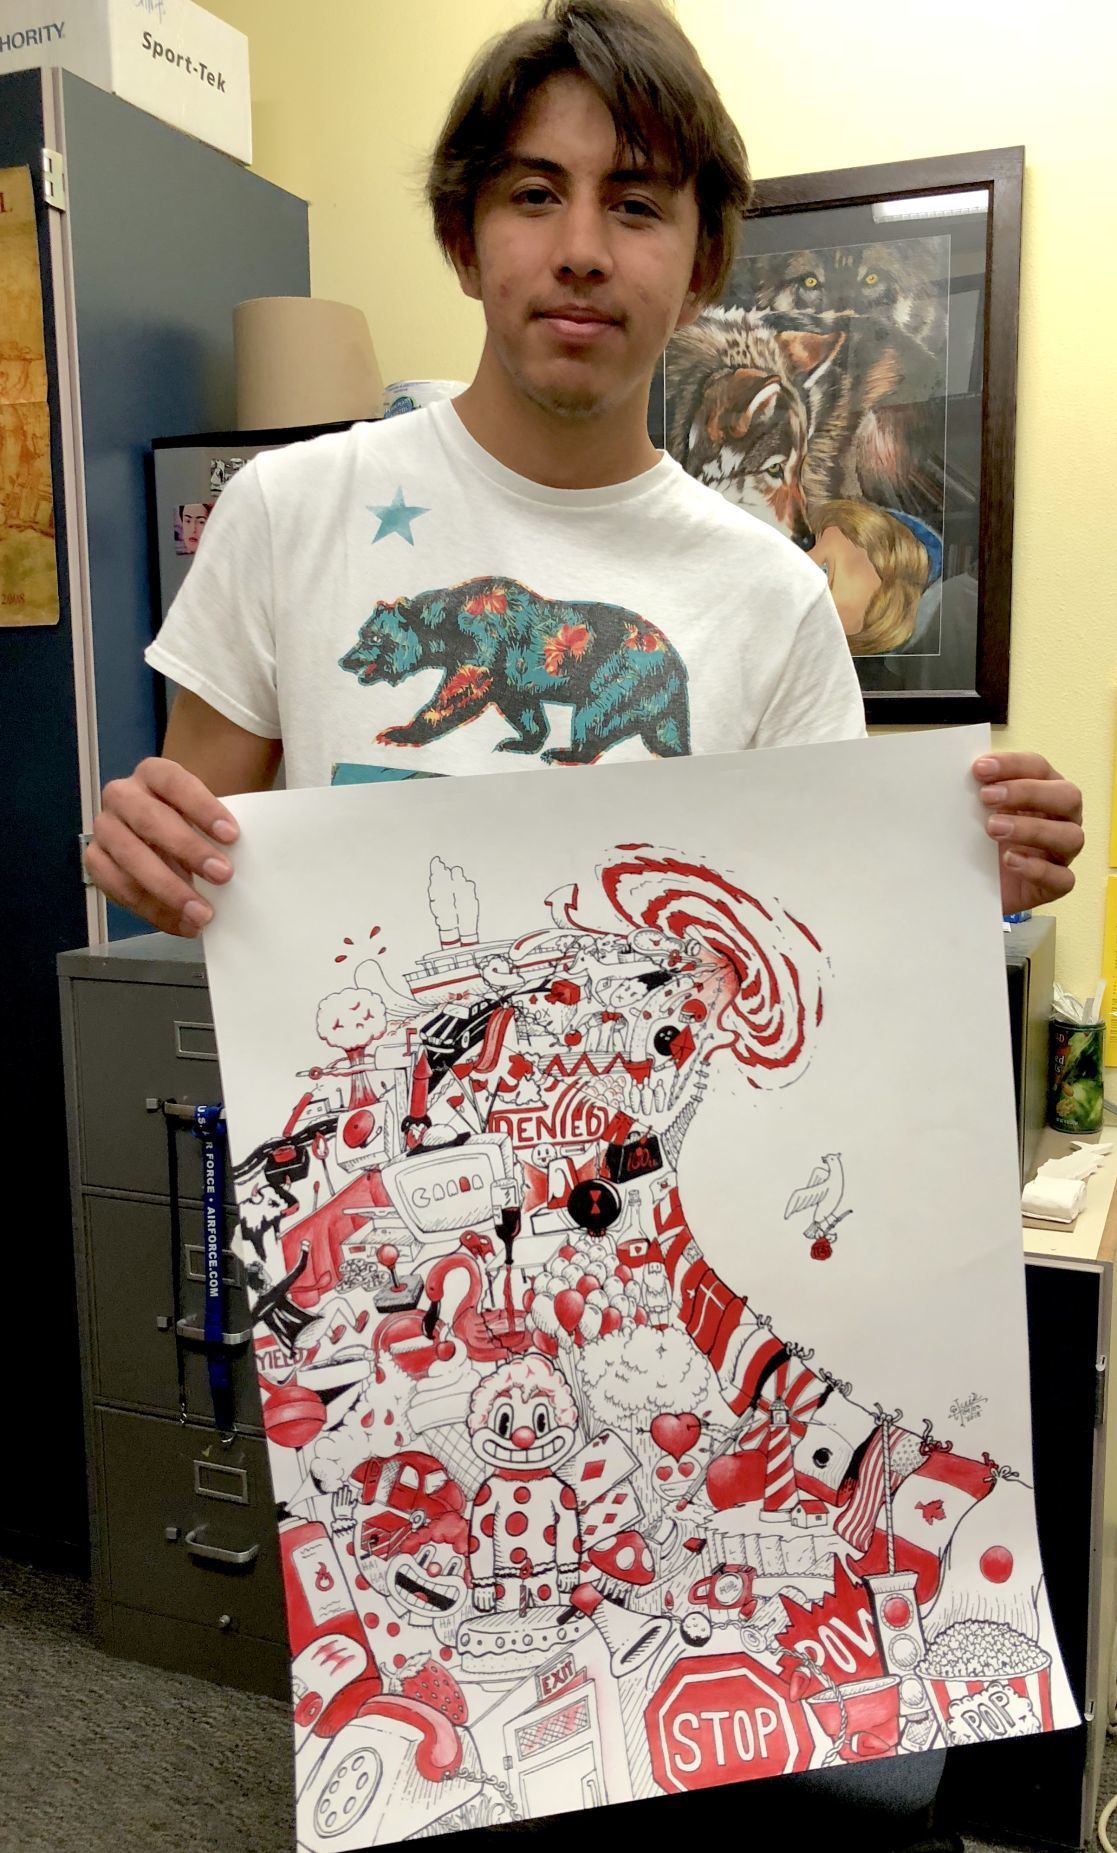 Luis Gurrola with his art